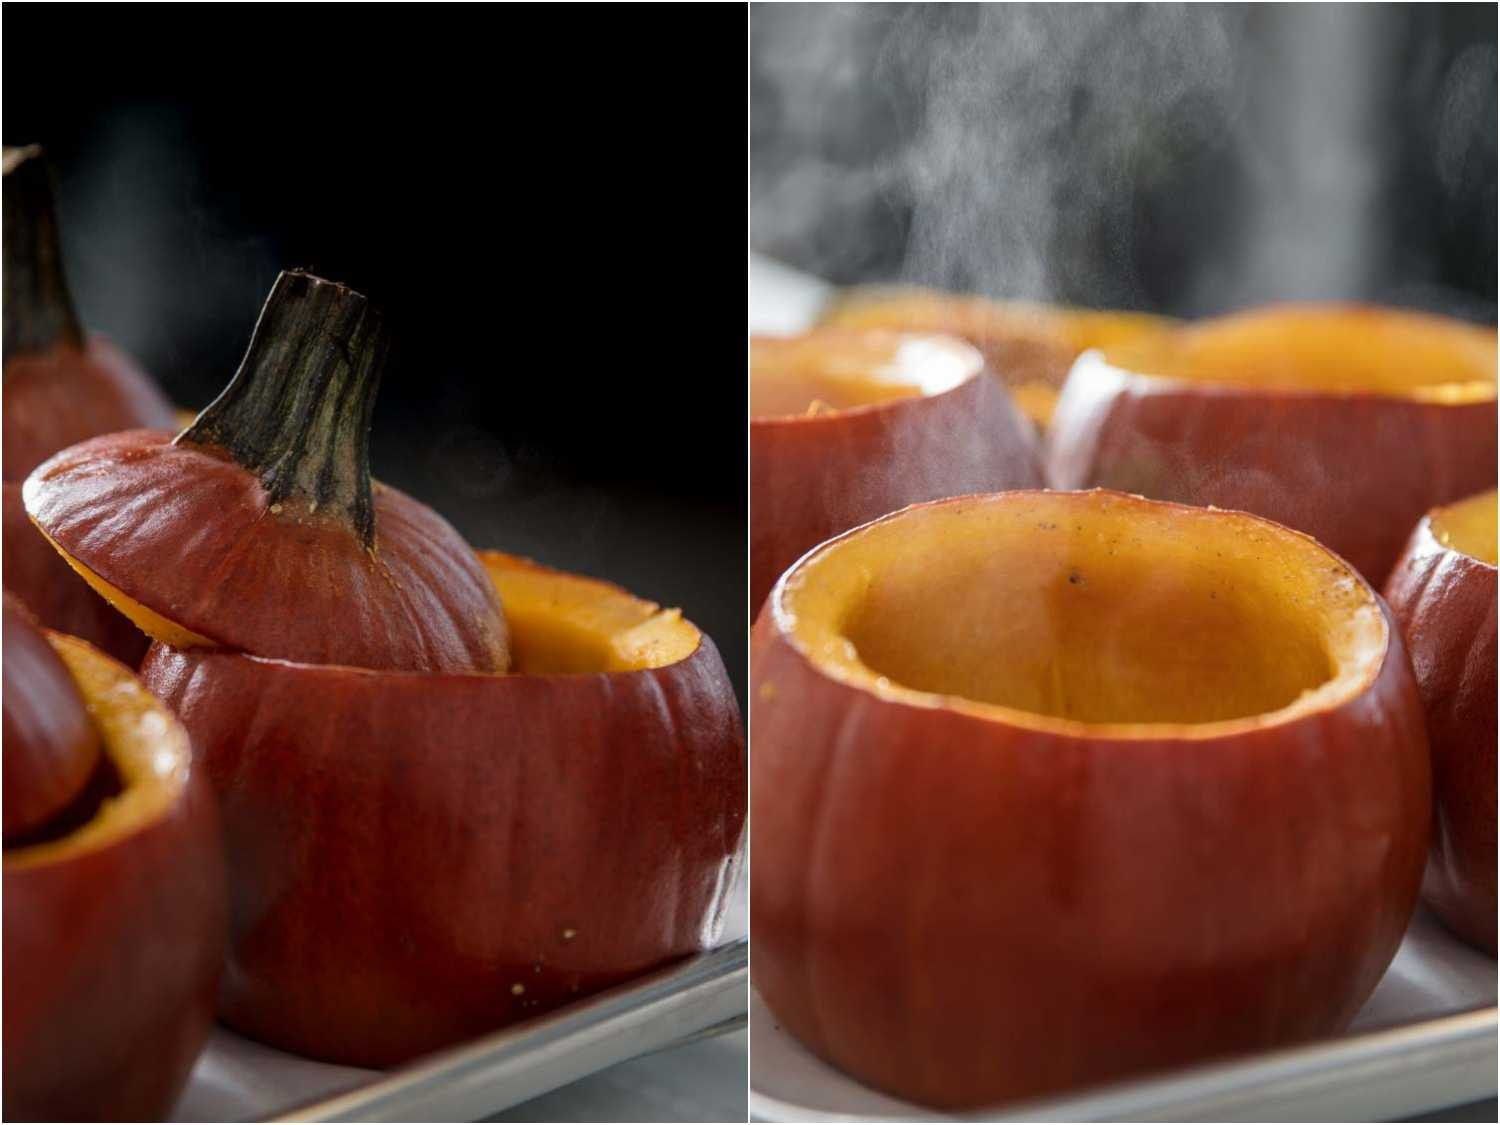 Roasted sugar pumpkins straight from the oven with steam rising.